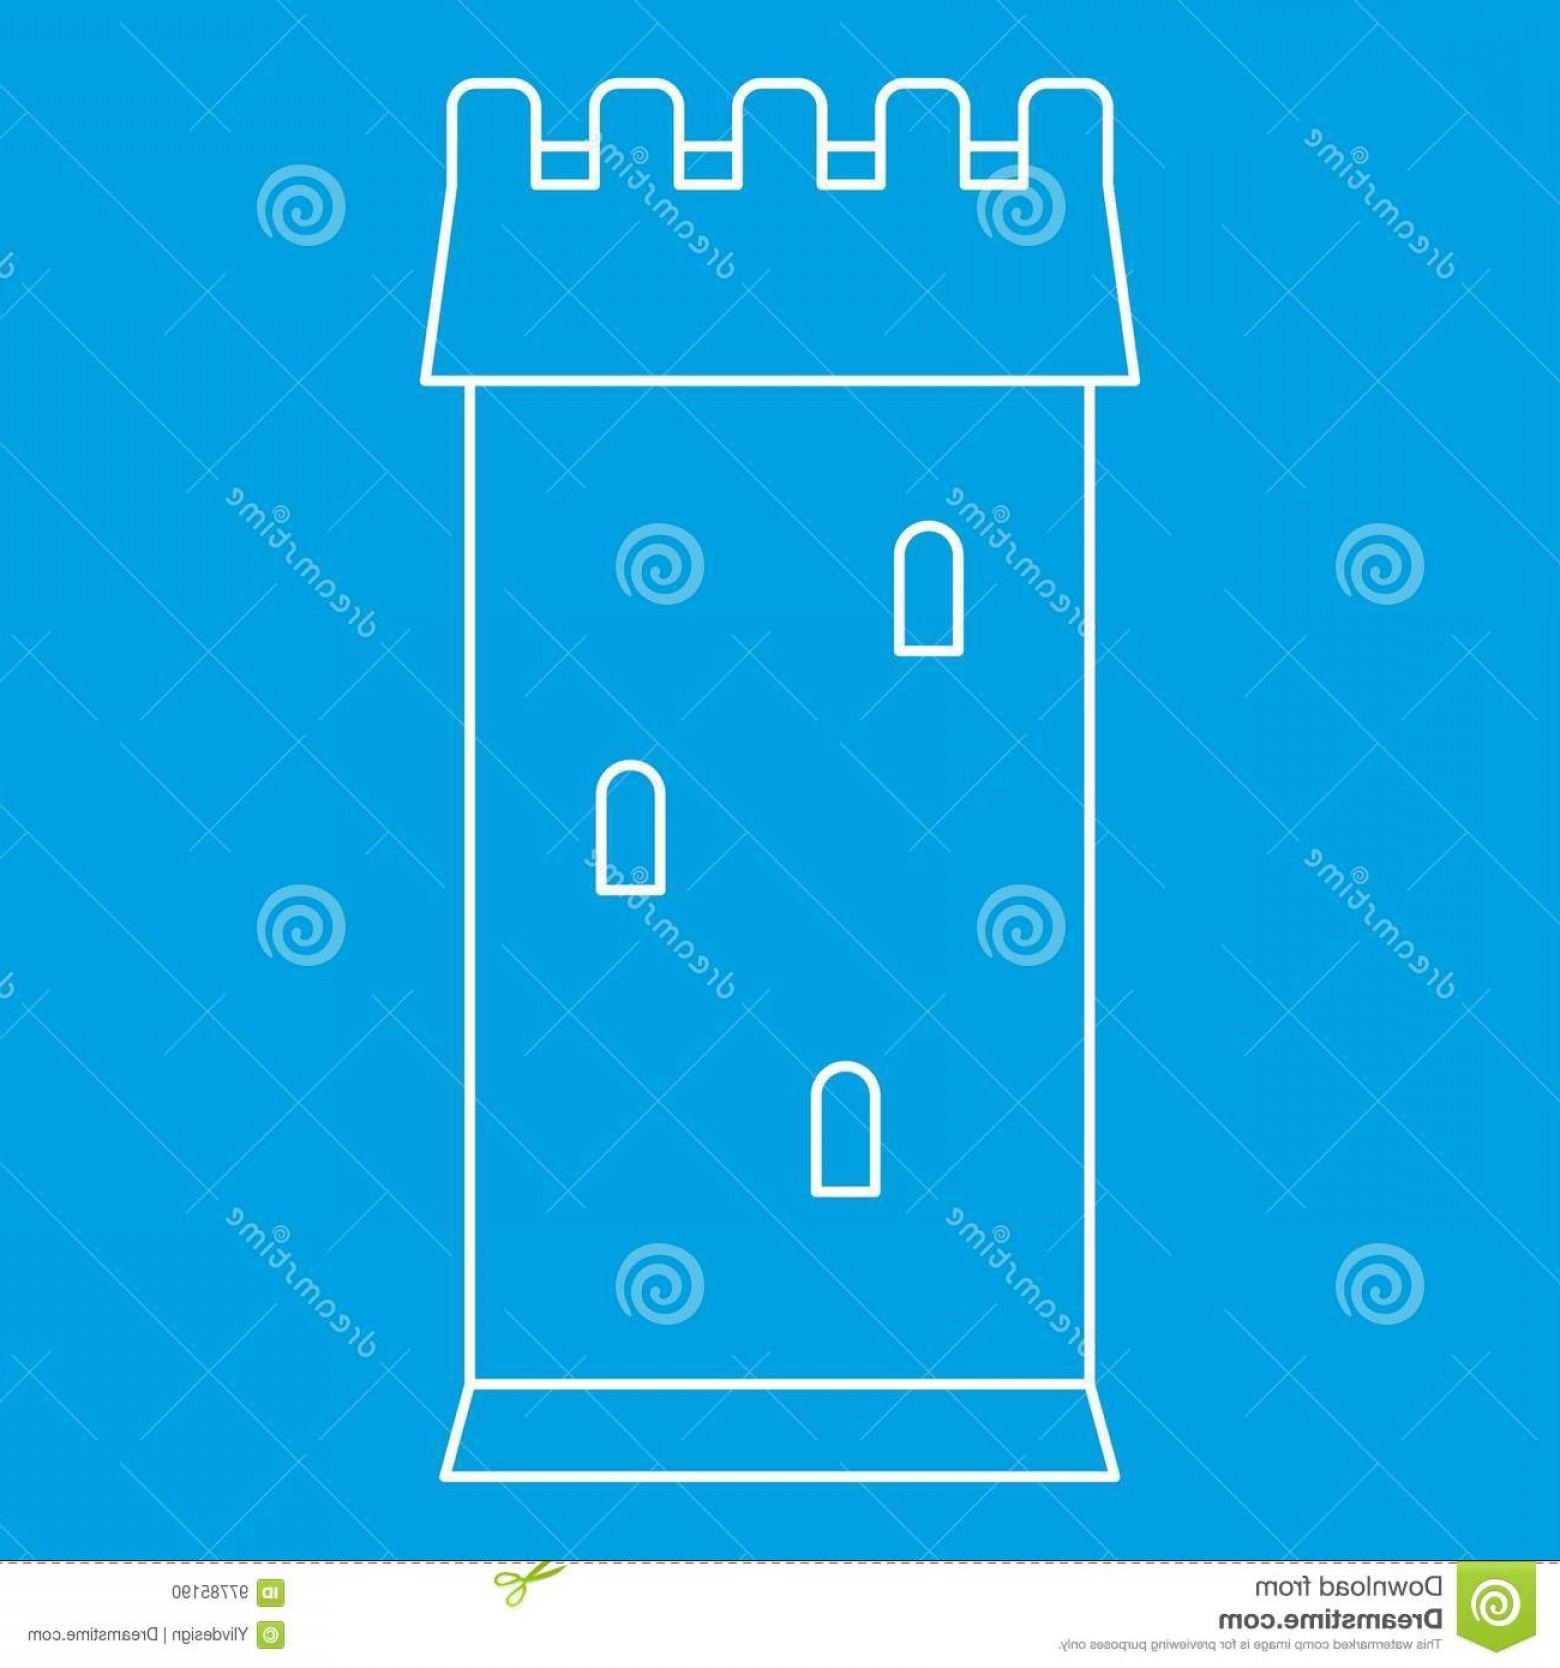 Vector Ancient Battle: Stock Illustration Ancient Battle Tower Icon Outline Style Blue Isolated Vector Illustration Thin Line Sign Image